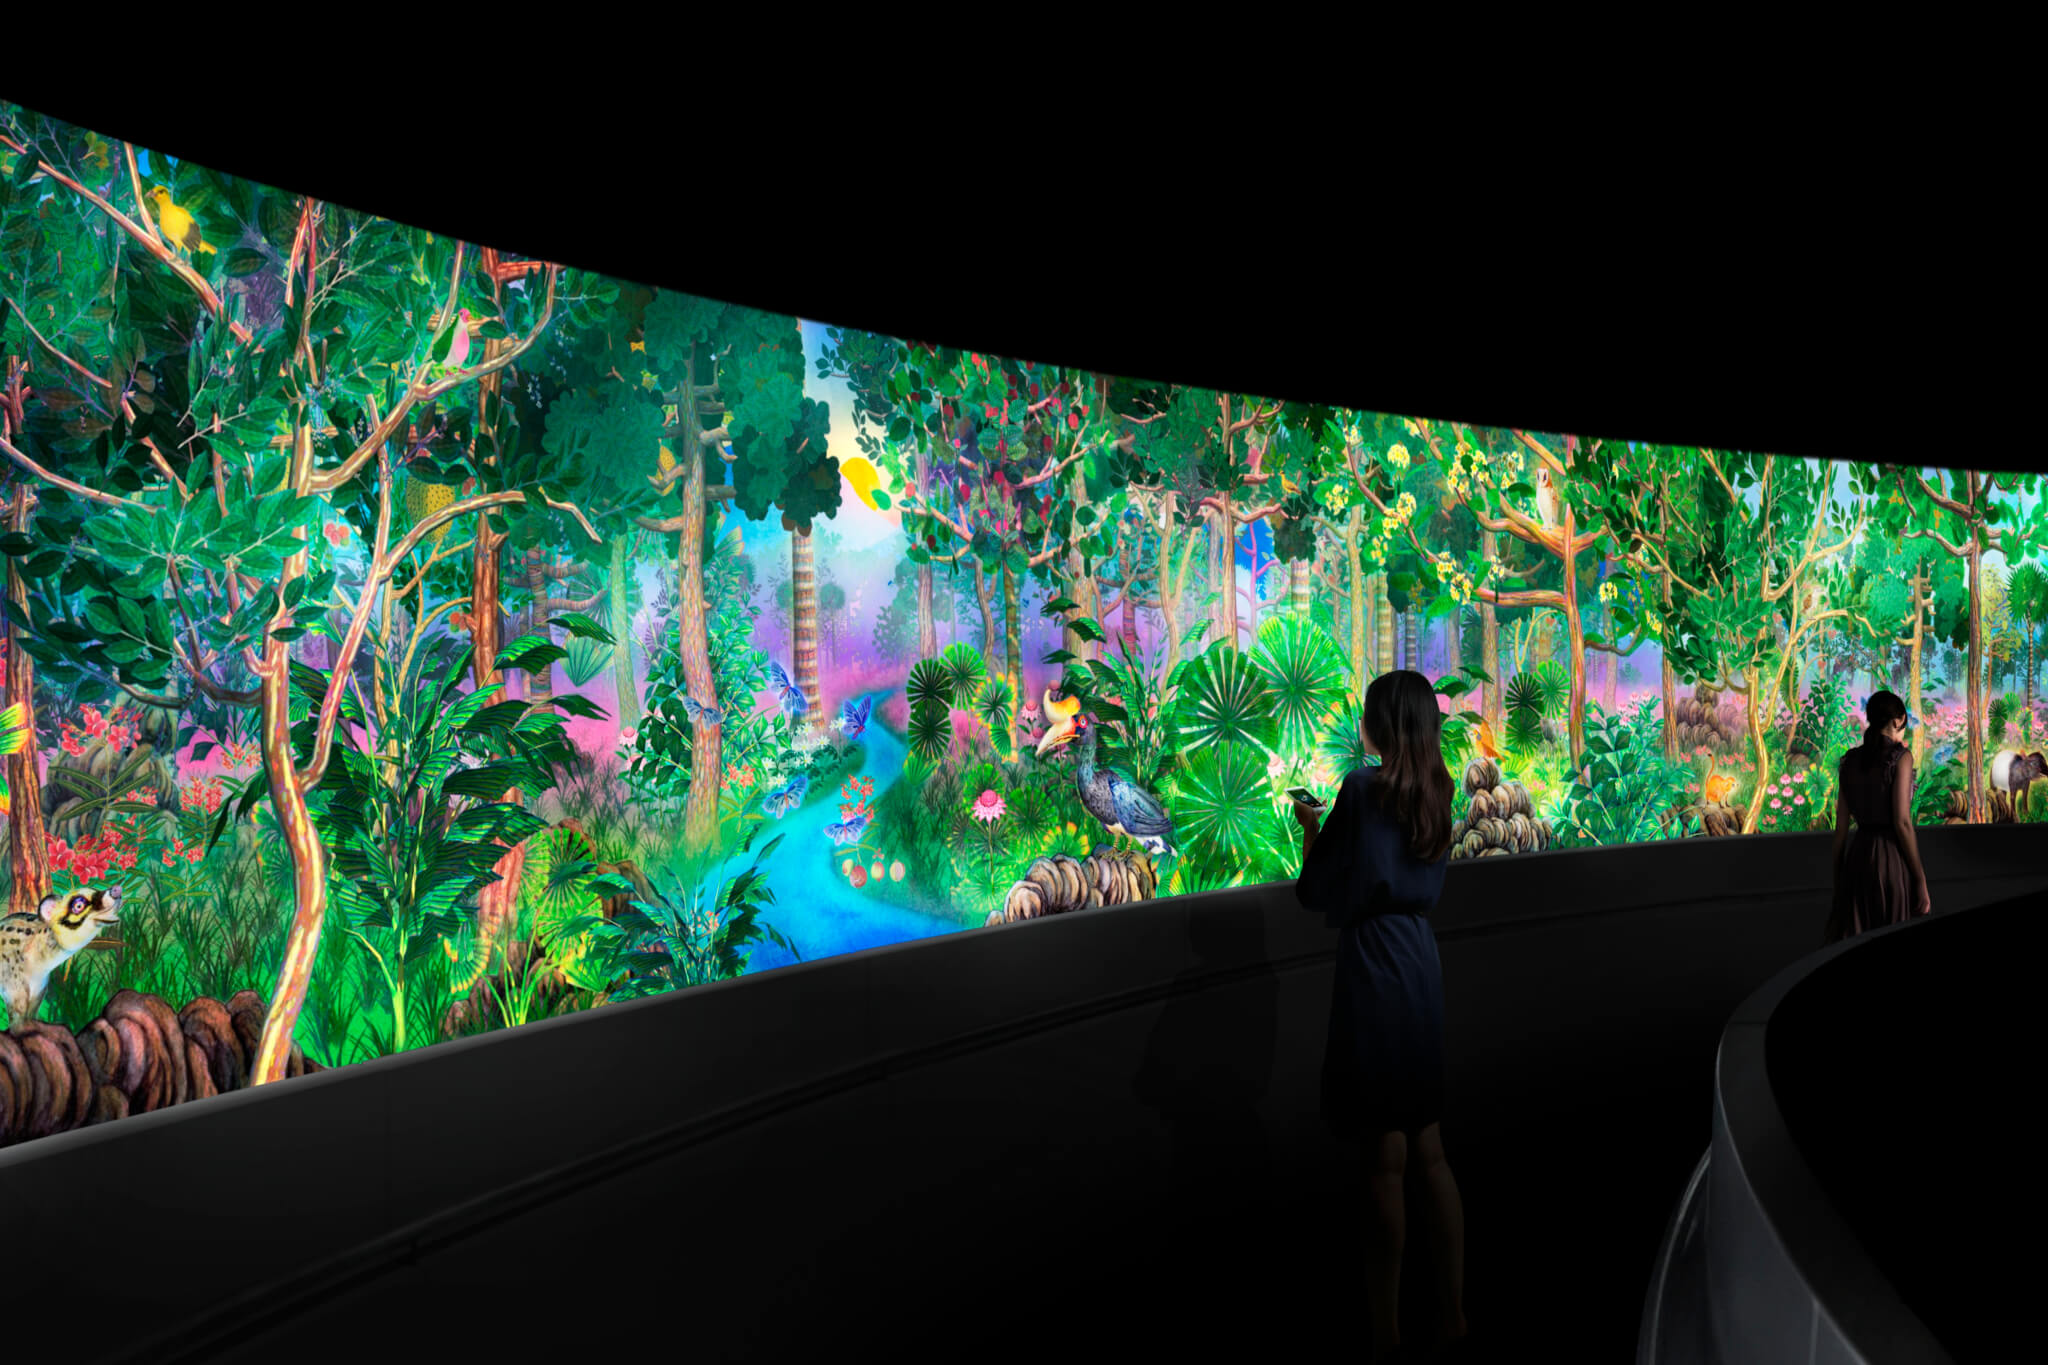 Story of the Forest at National Museum of Singapore